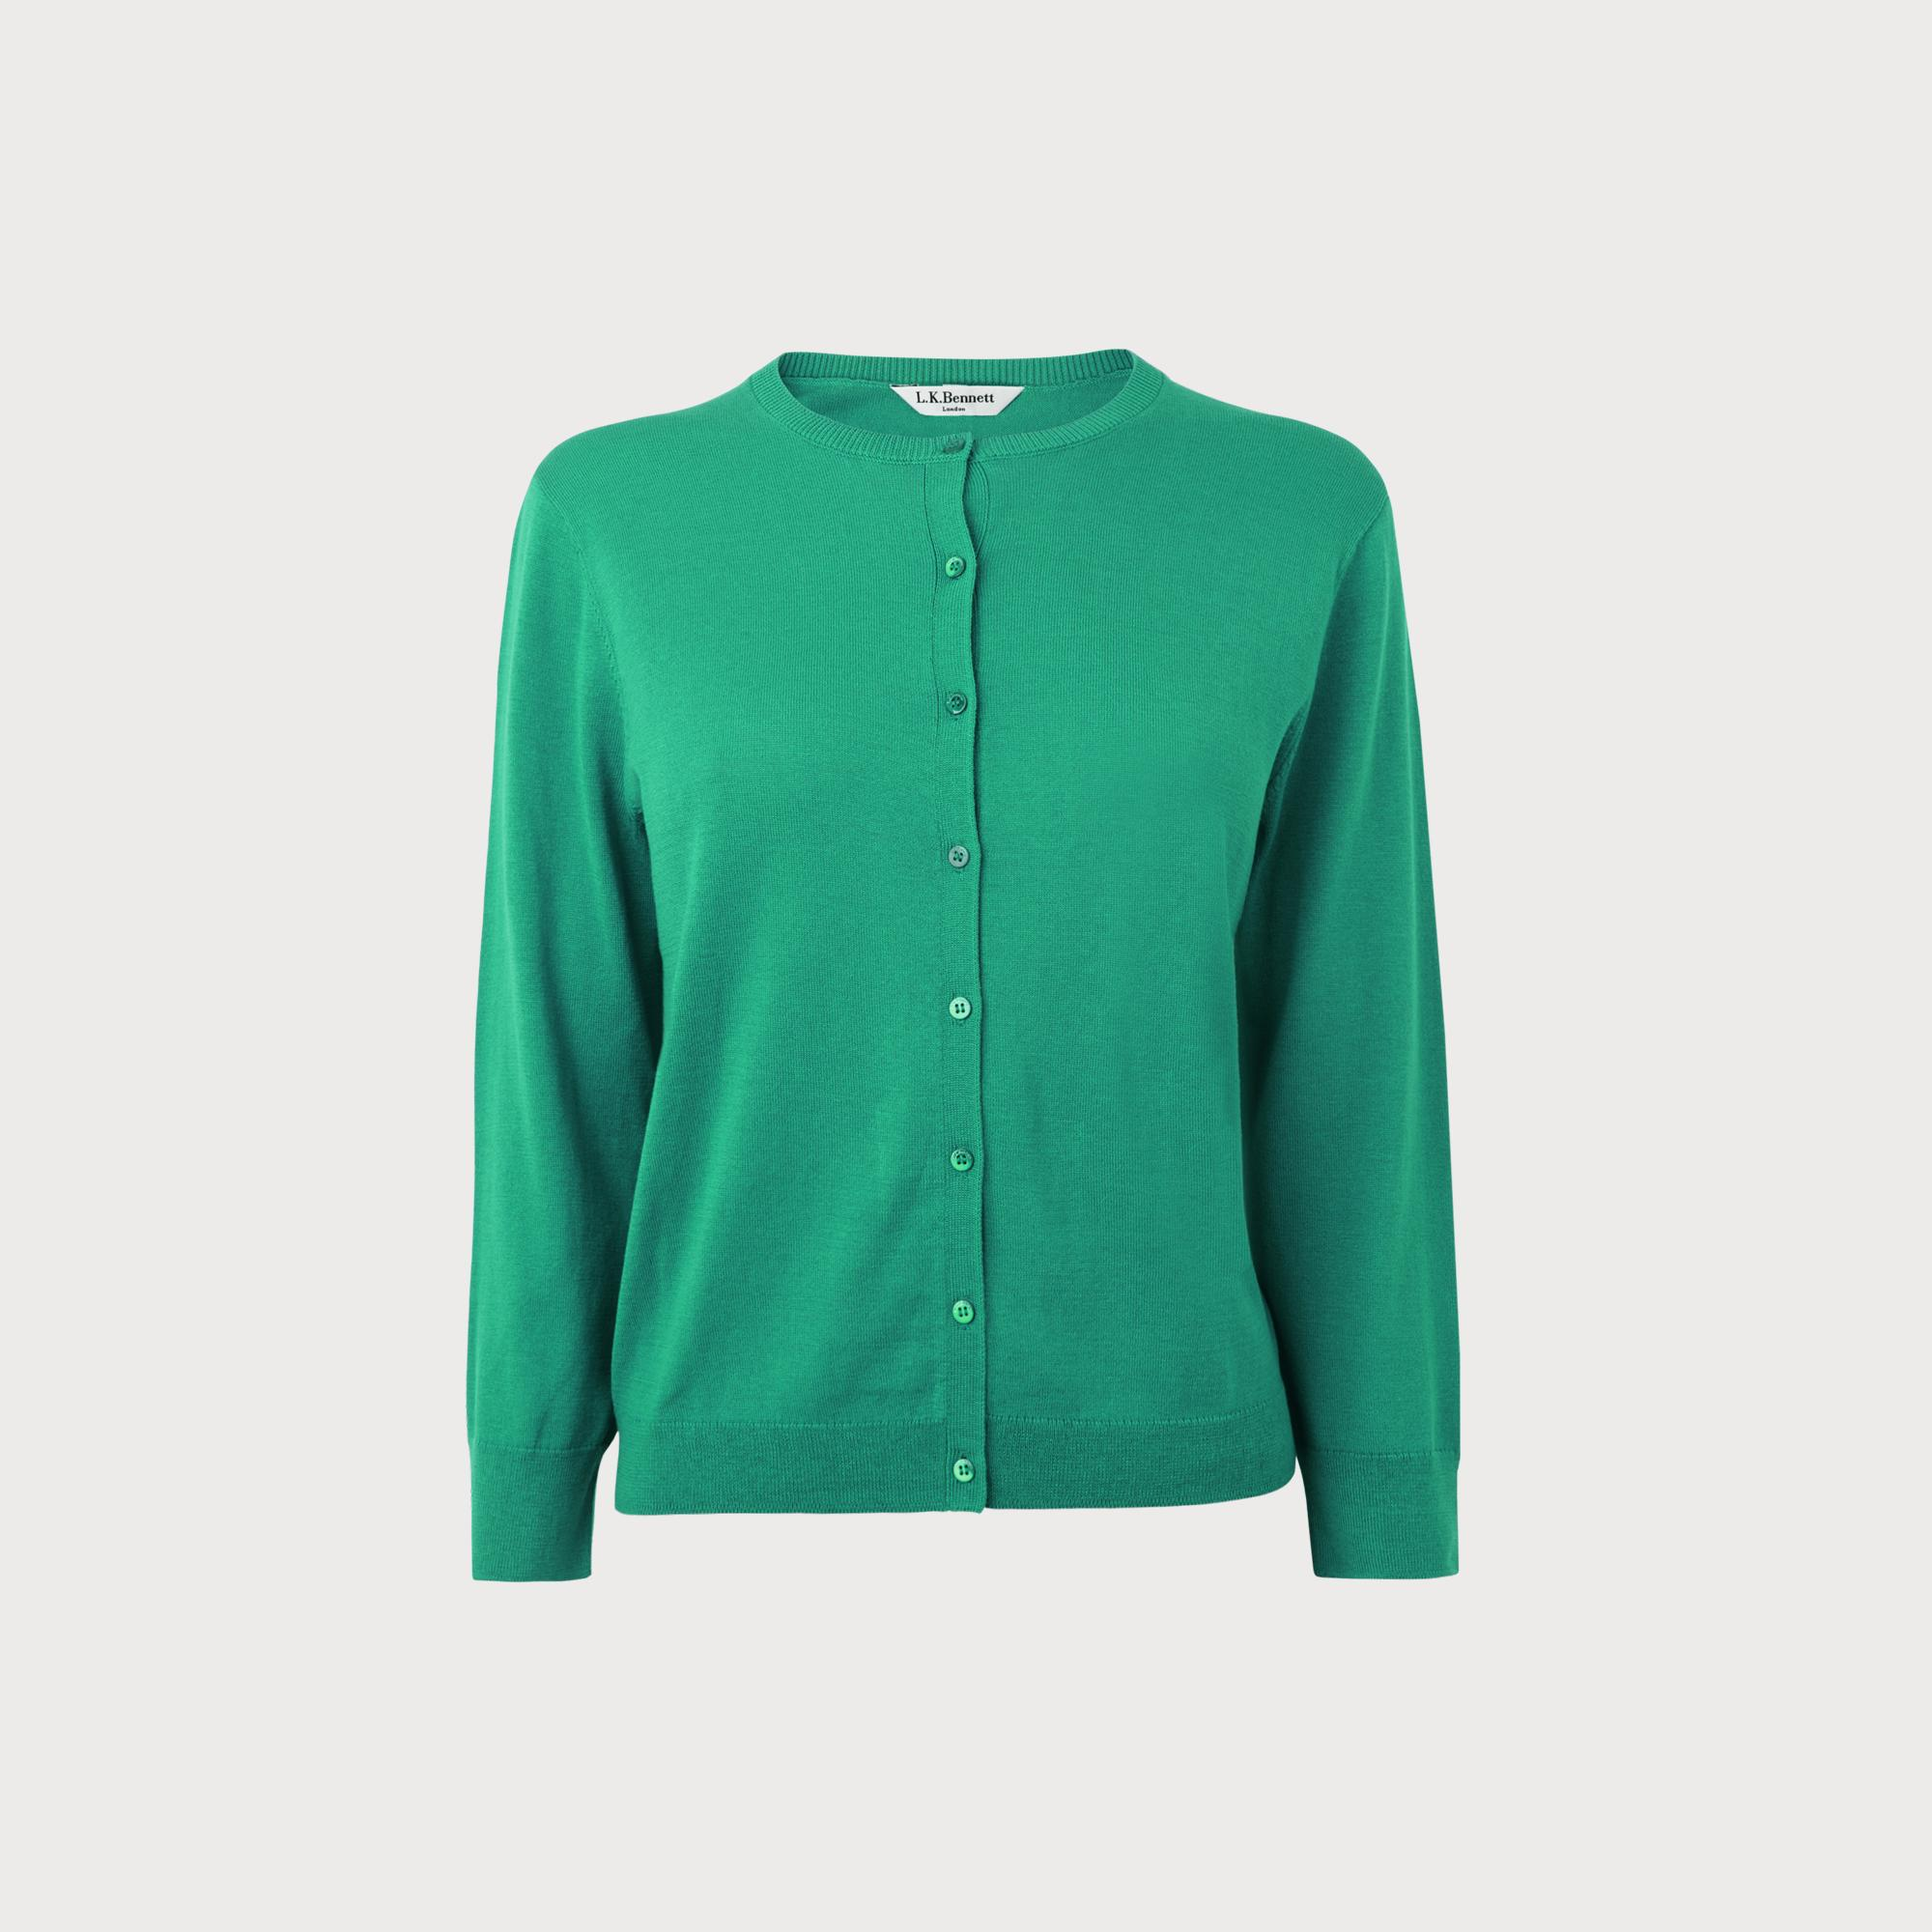 Bibia Green Cardigan by L.K.Bennett